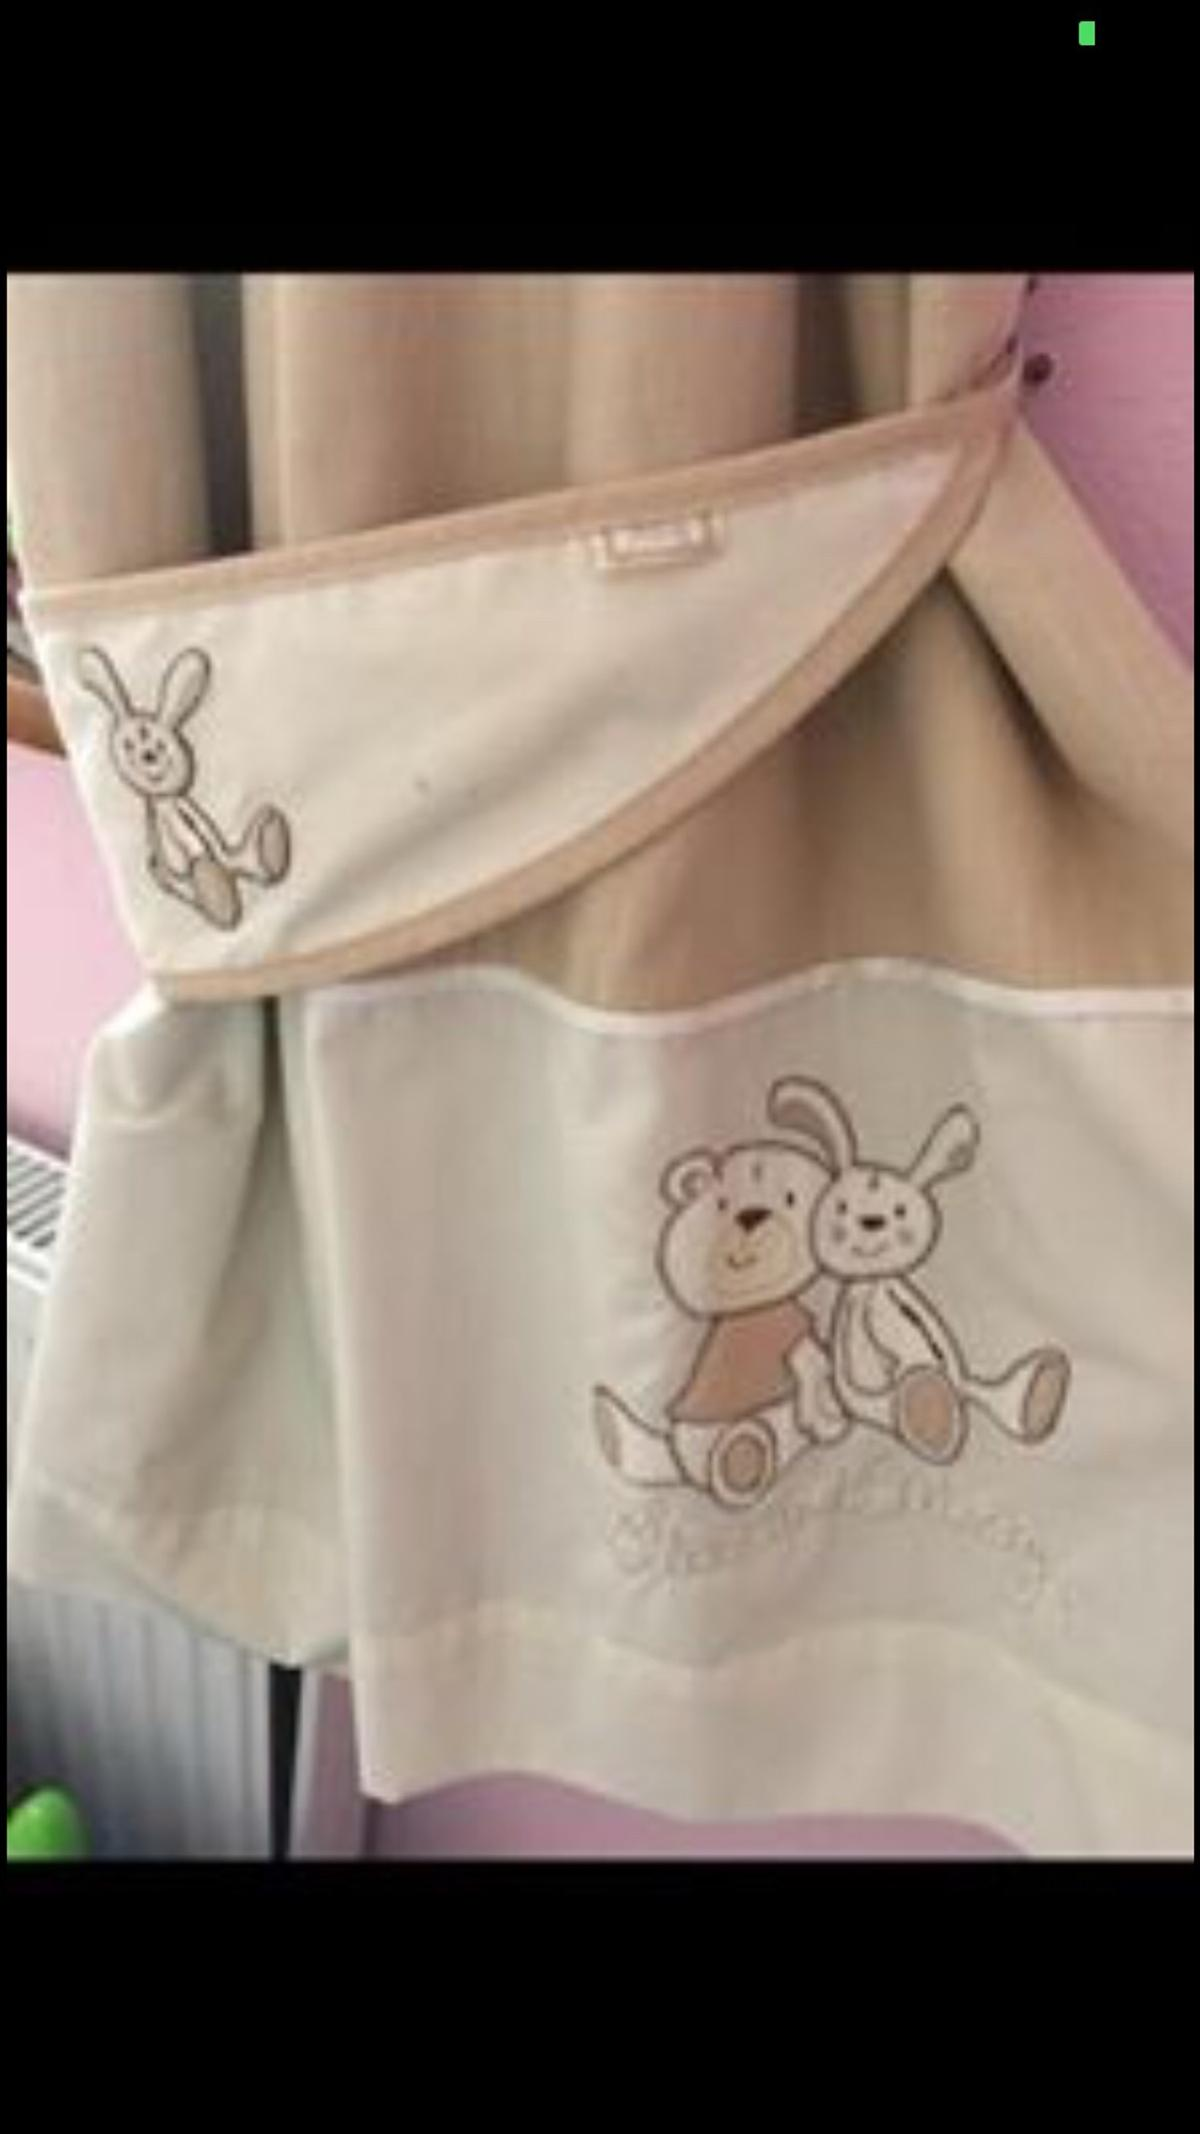 Next nursery set - Ollie and Mollie. Fully lined (black out) curtains and tie backs, lamp shade, rug, mobile, cot blanket and bumpers. Pet and smoke free home. Collection only.